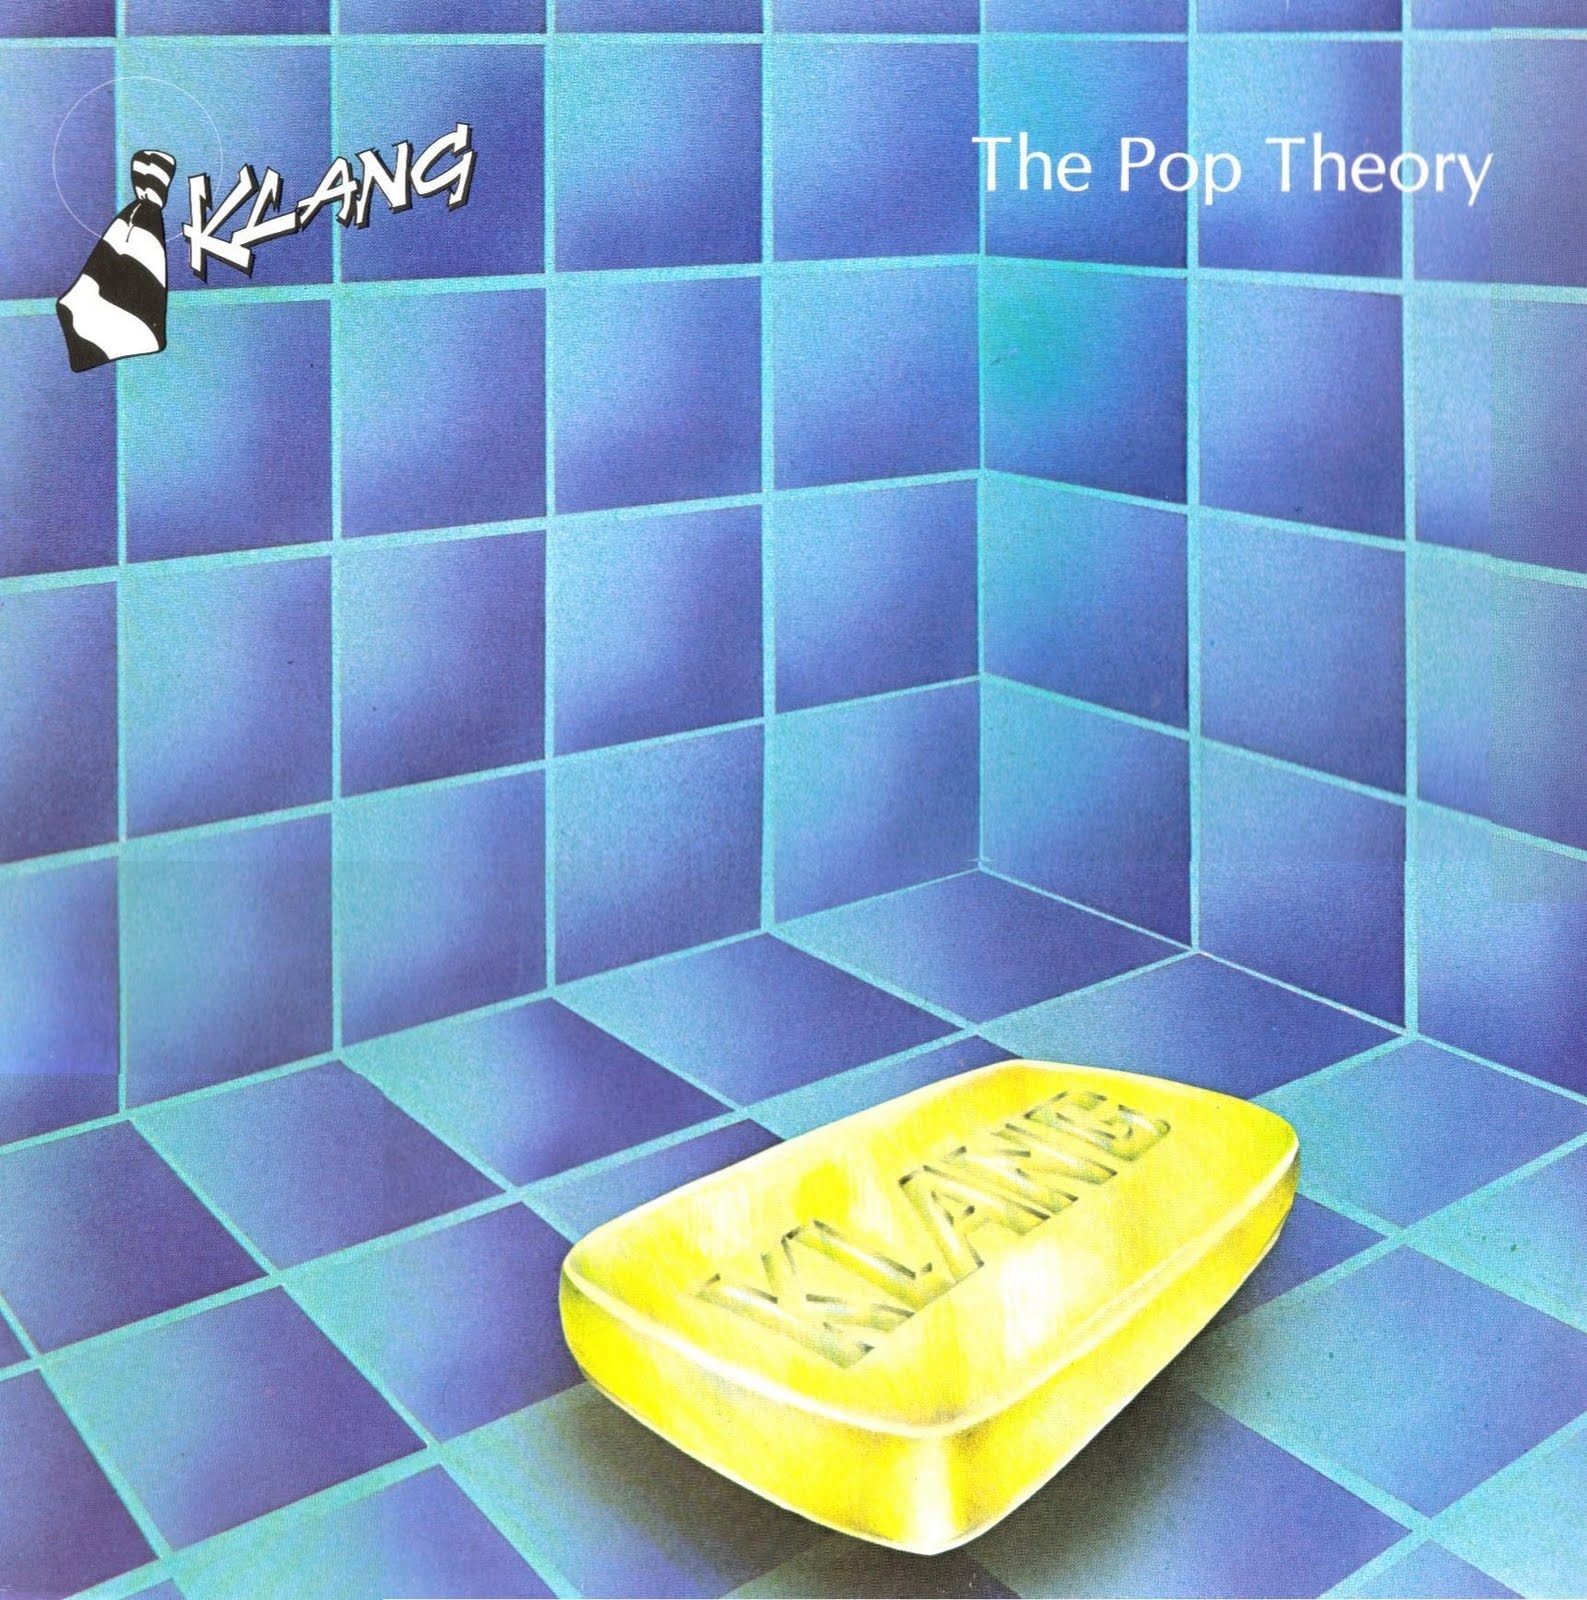 Klang - The Pop Theory